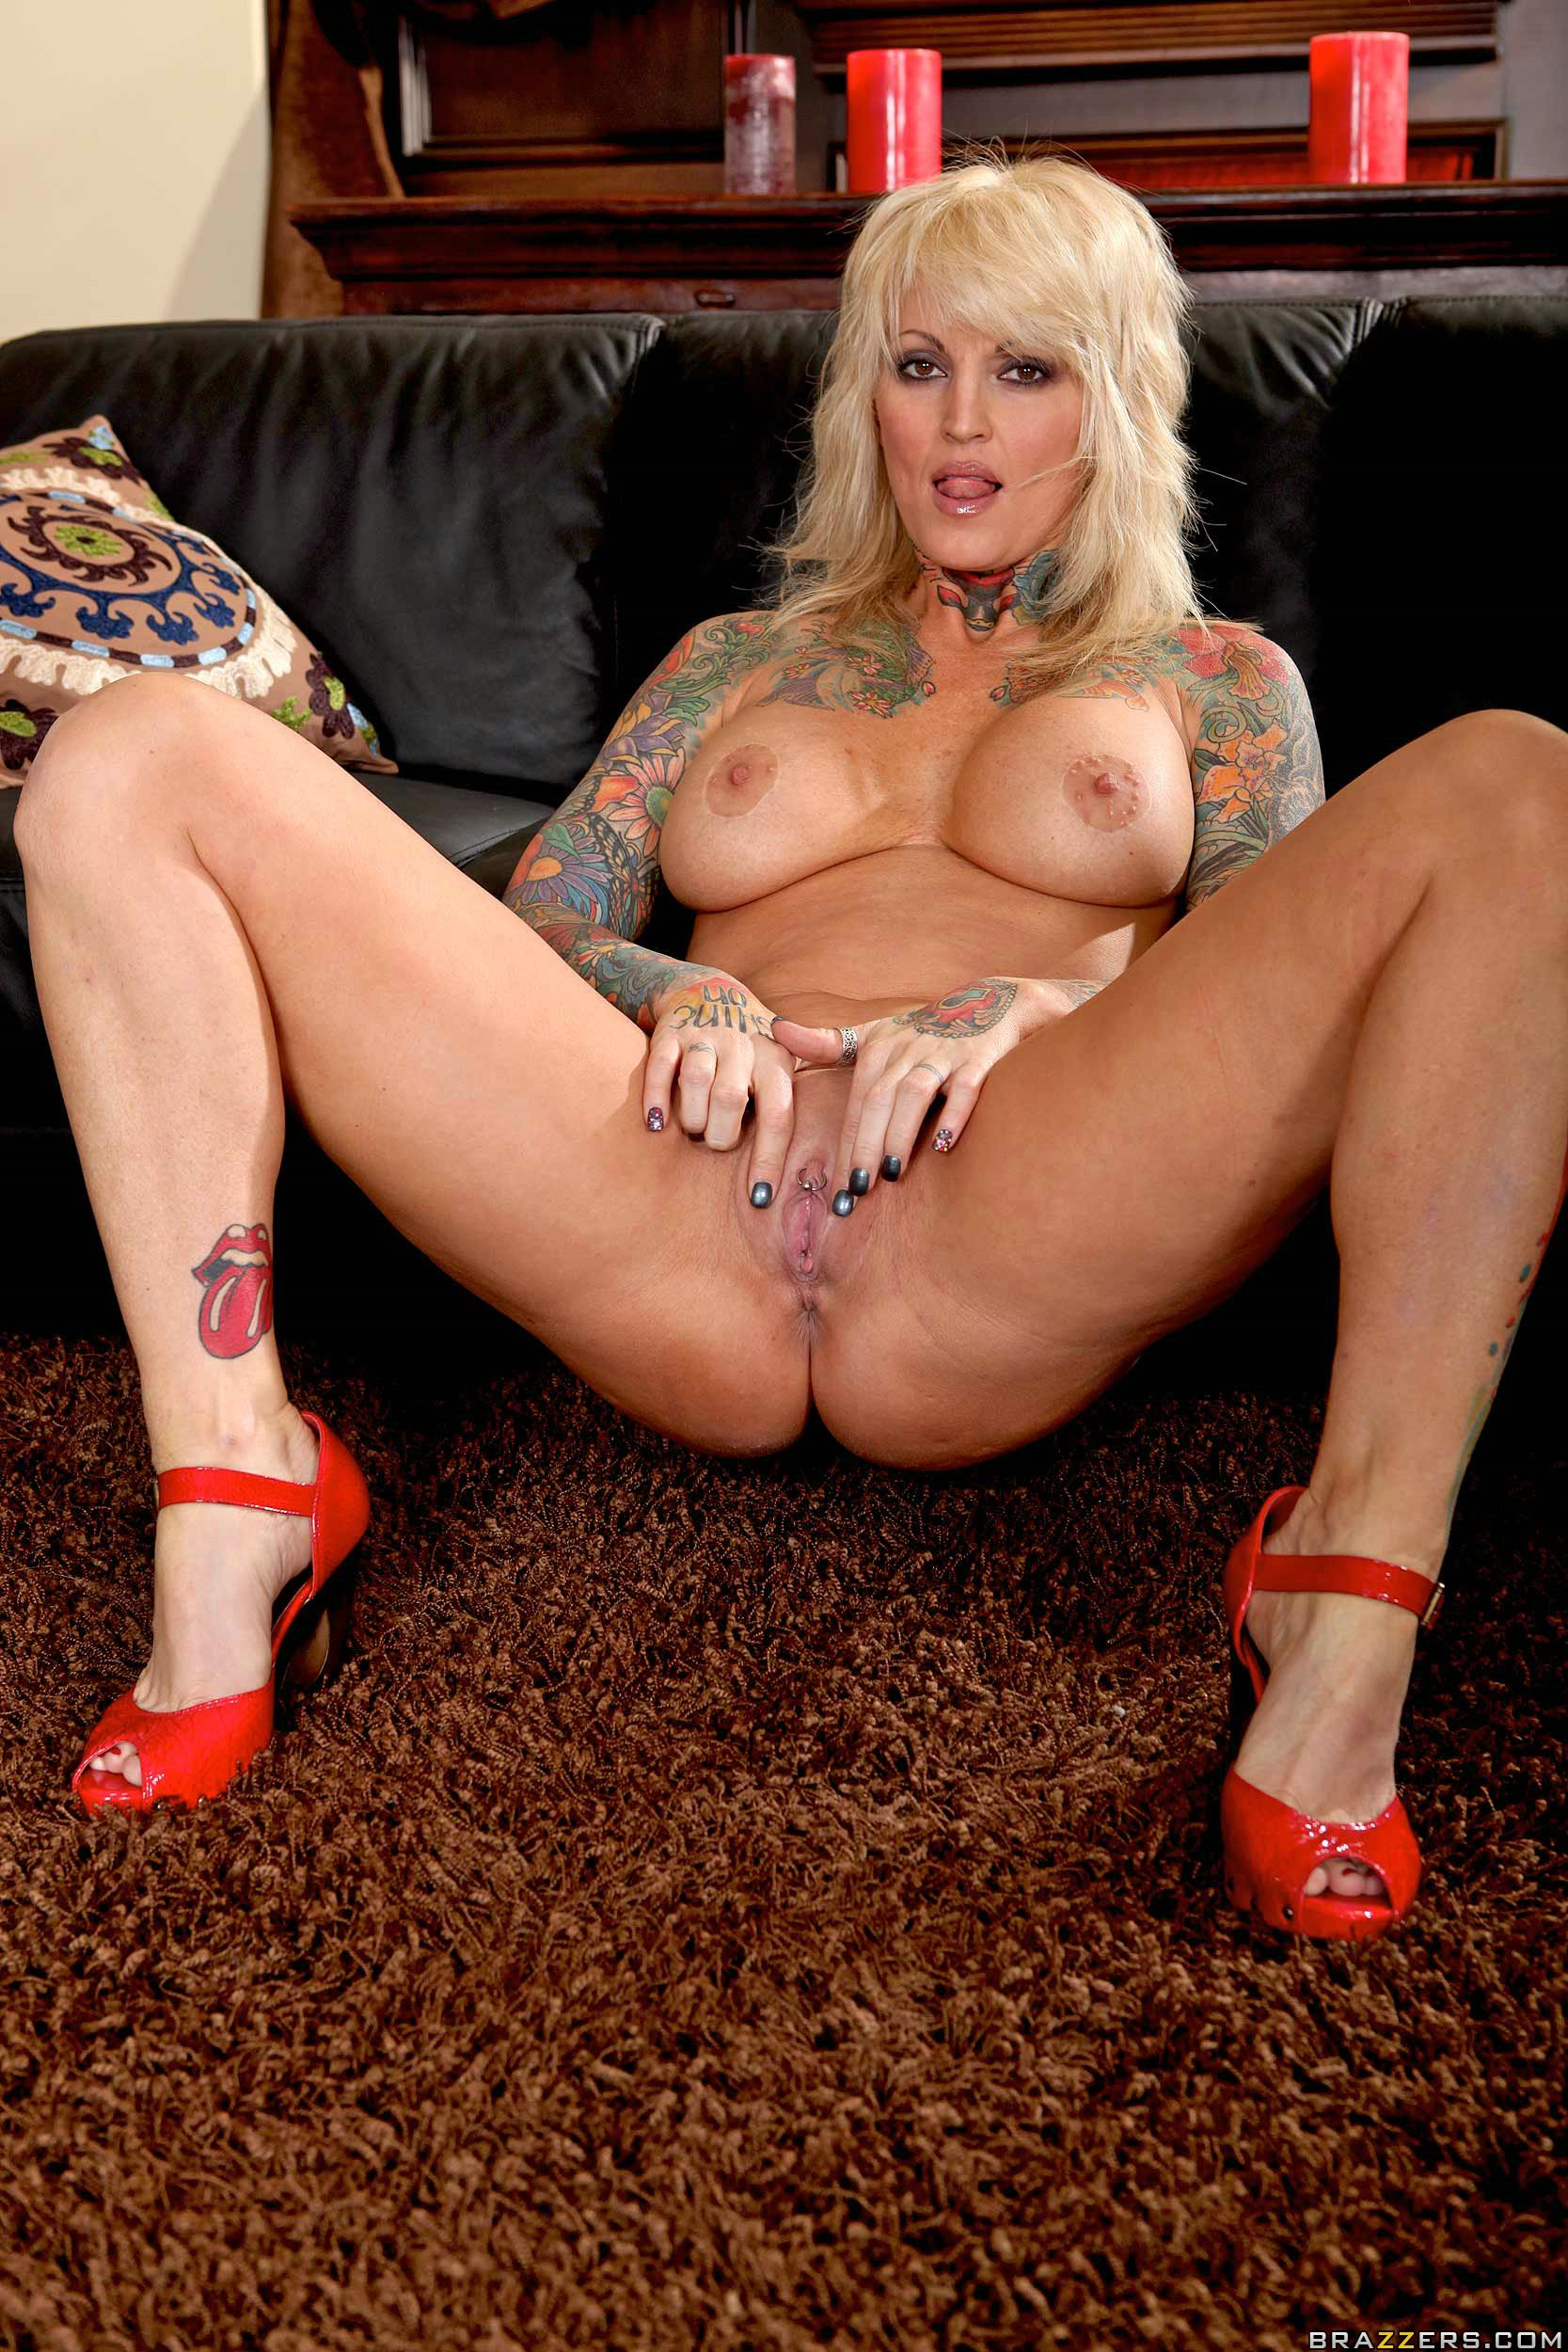 Hot tattoed blonde mom pucker her ass hole